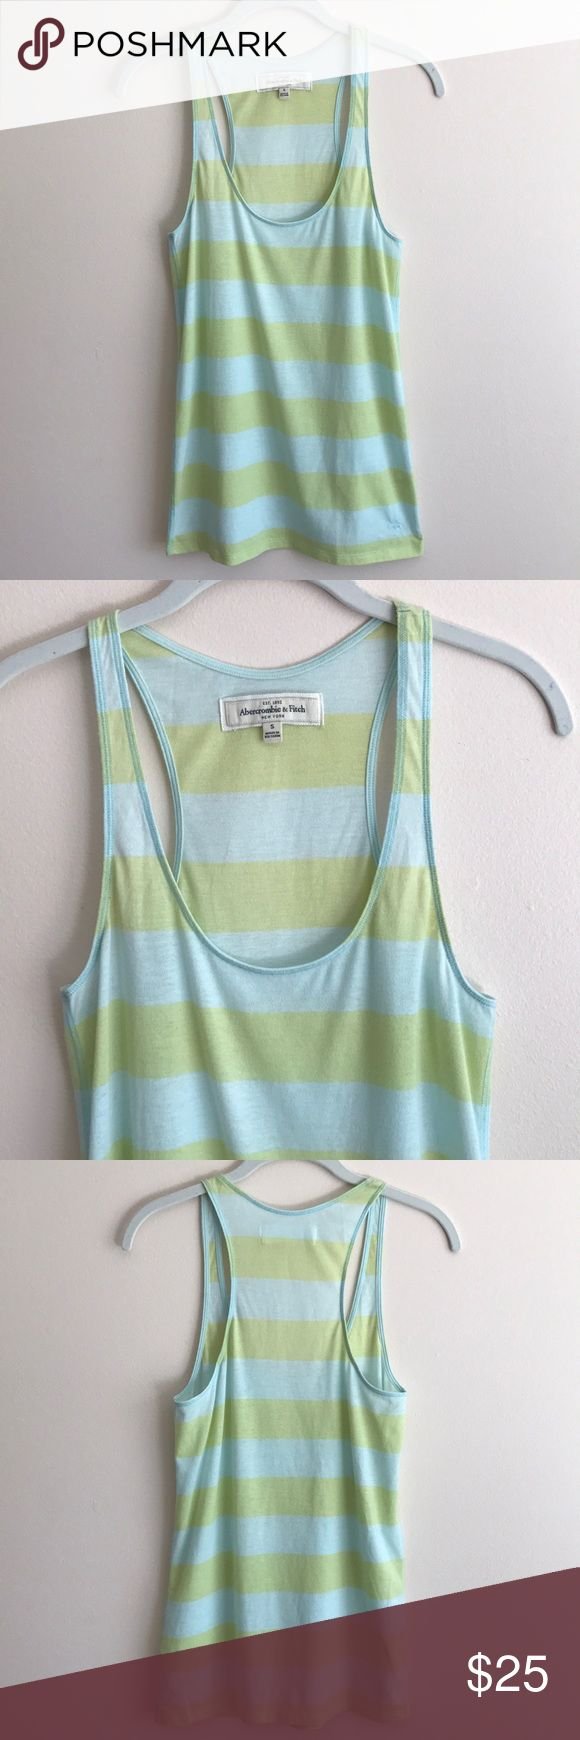 """Abercrombie & Fitch green stripe racerback tank Abercrombie & Fitch lime green/sky blue stripe cotton racerback tank, , slouchy fit, semi-sheer fabric, body length 28"""" - excellent condition lovingly worn a few times Abercrombie & Fitch Tops Tank Tops"""